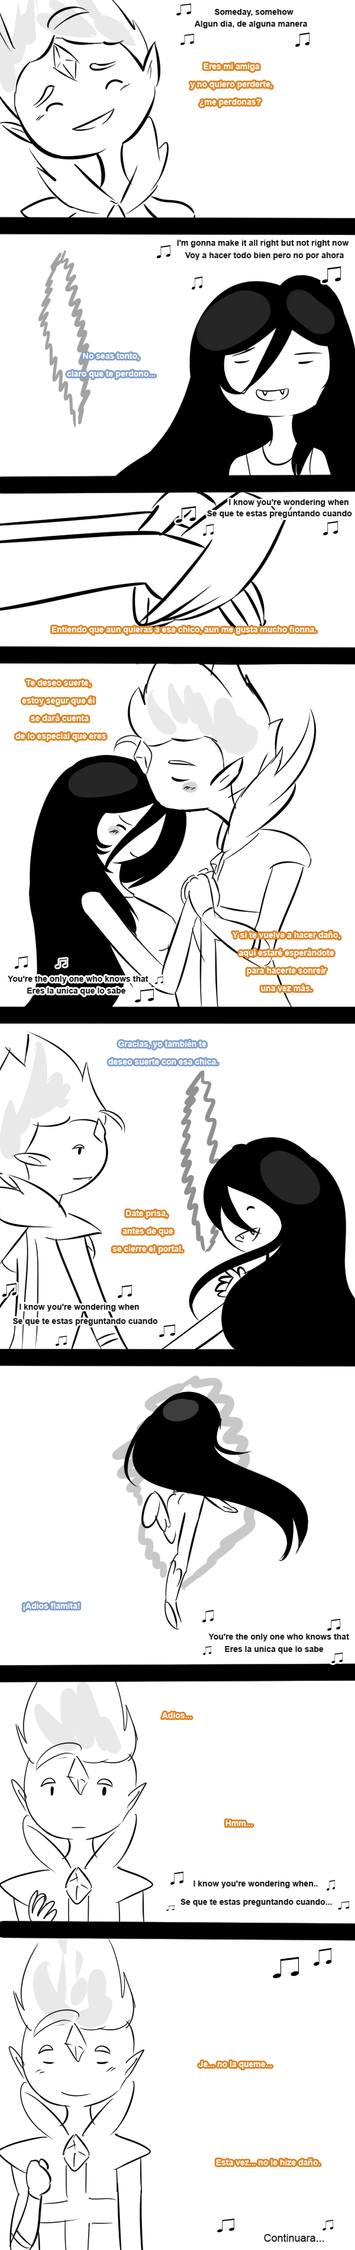 Someday - Parte 6 by Rumay-Chian